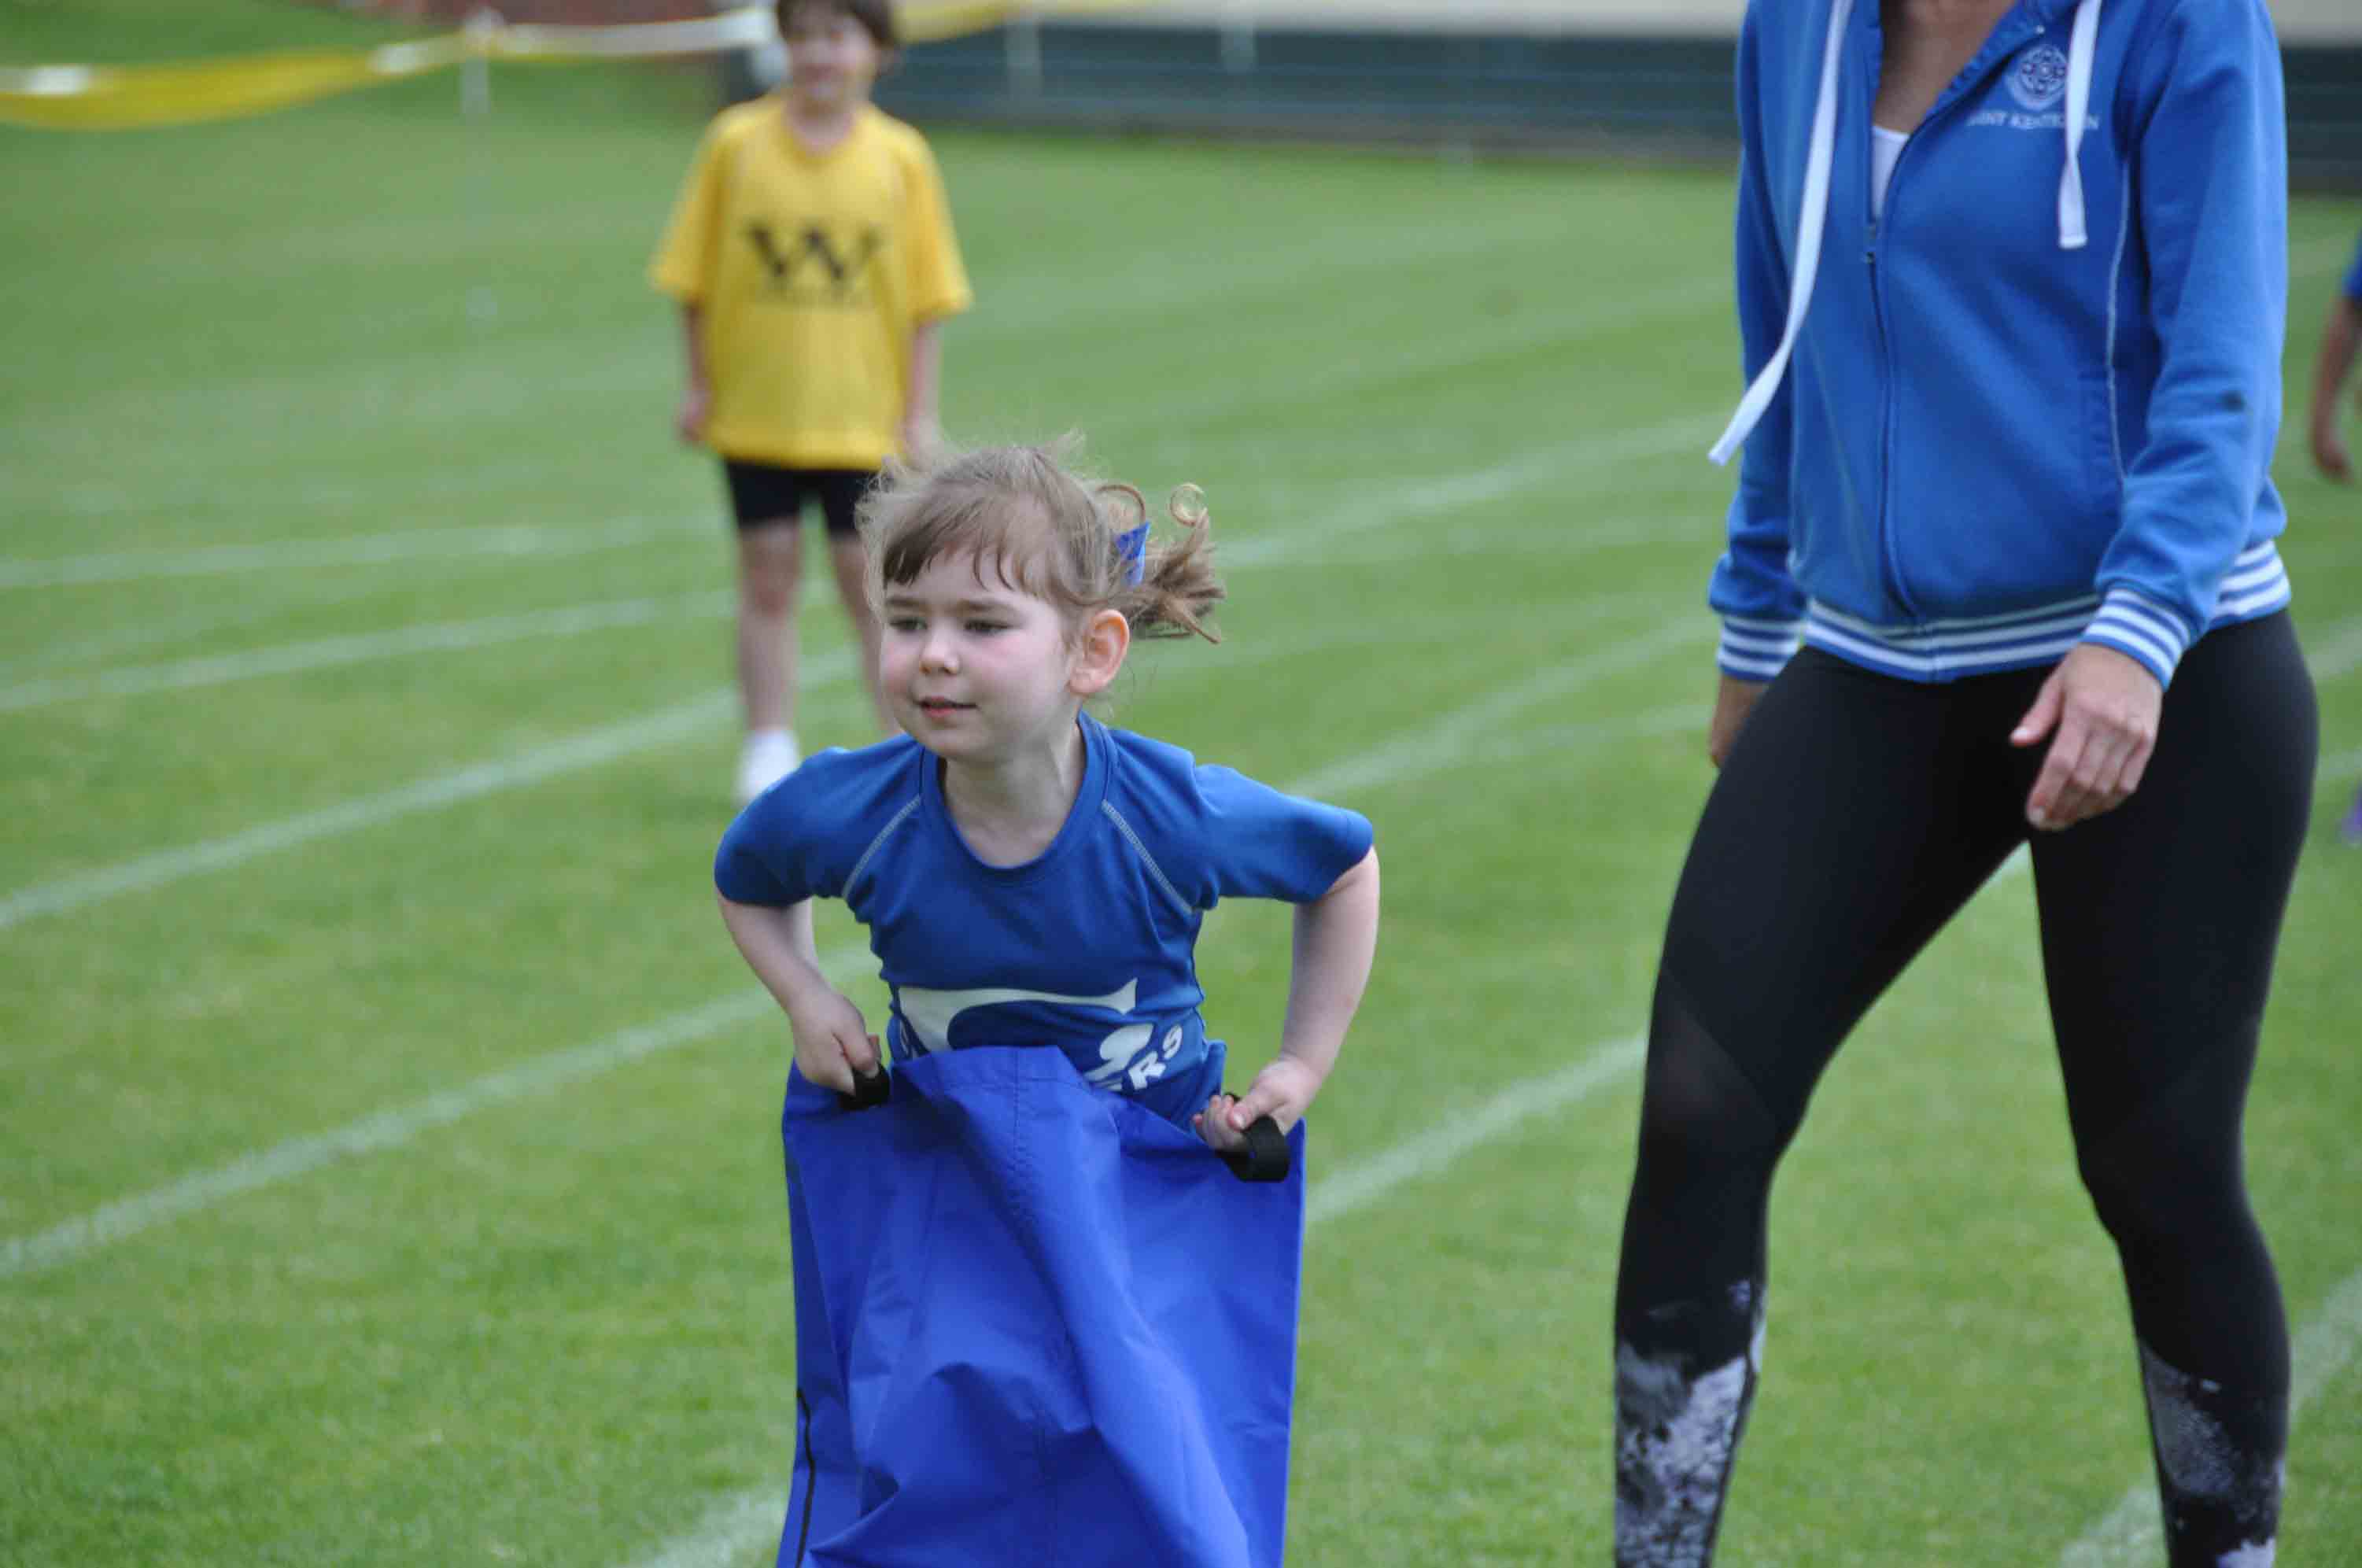 38 Saint-Kentigern-Girls'-Schol-Athletics.jpg